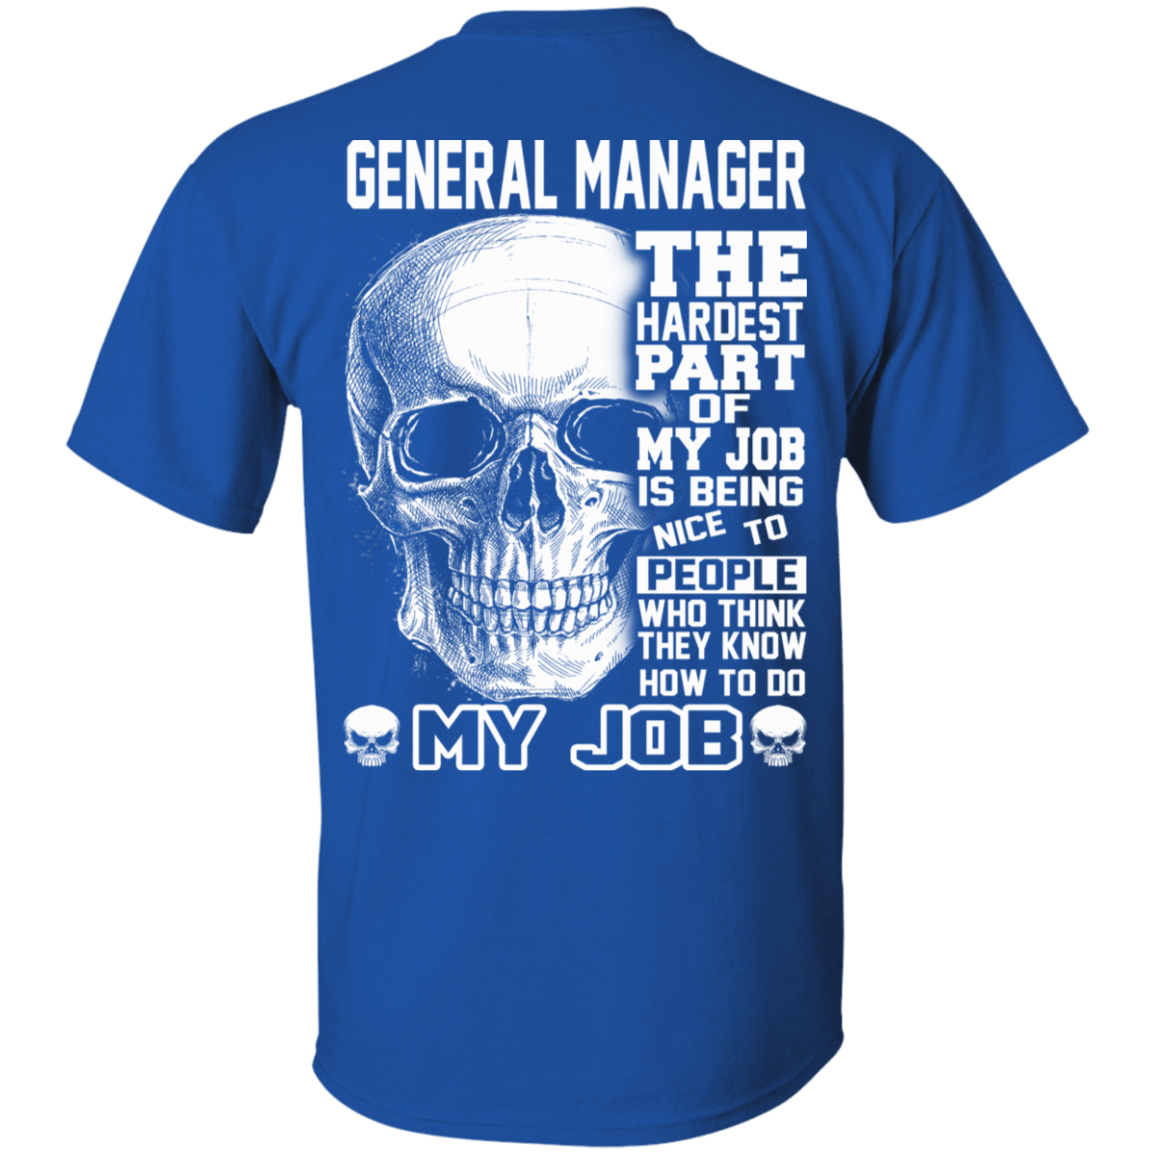 General Manager The Hardest Part Of My Job 22-110-71609227-249 - Tee Ript